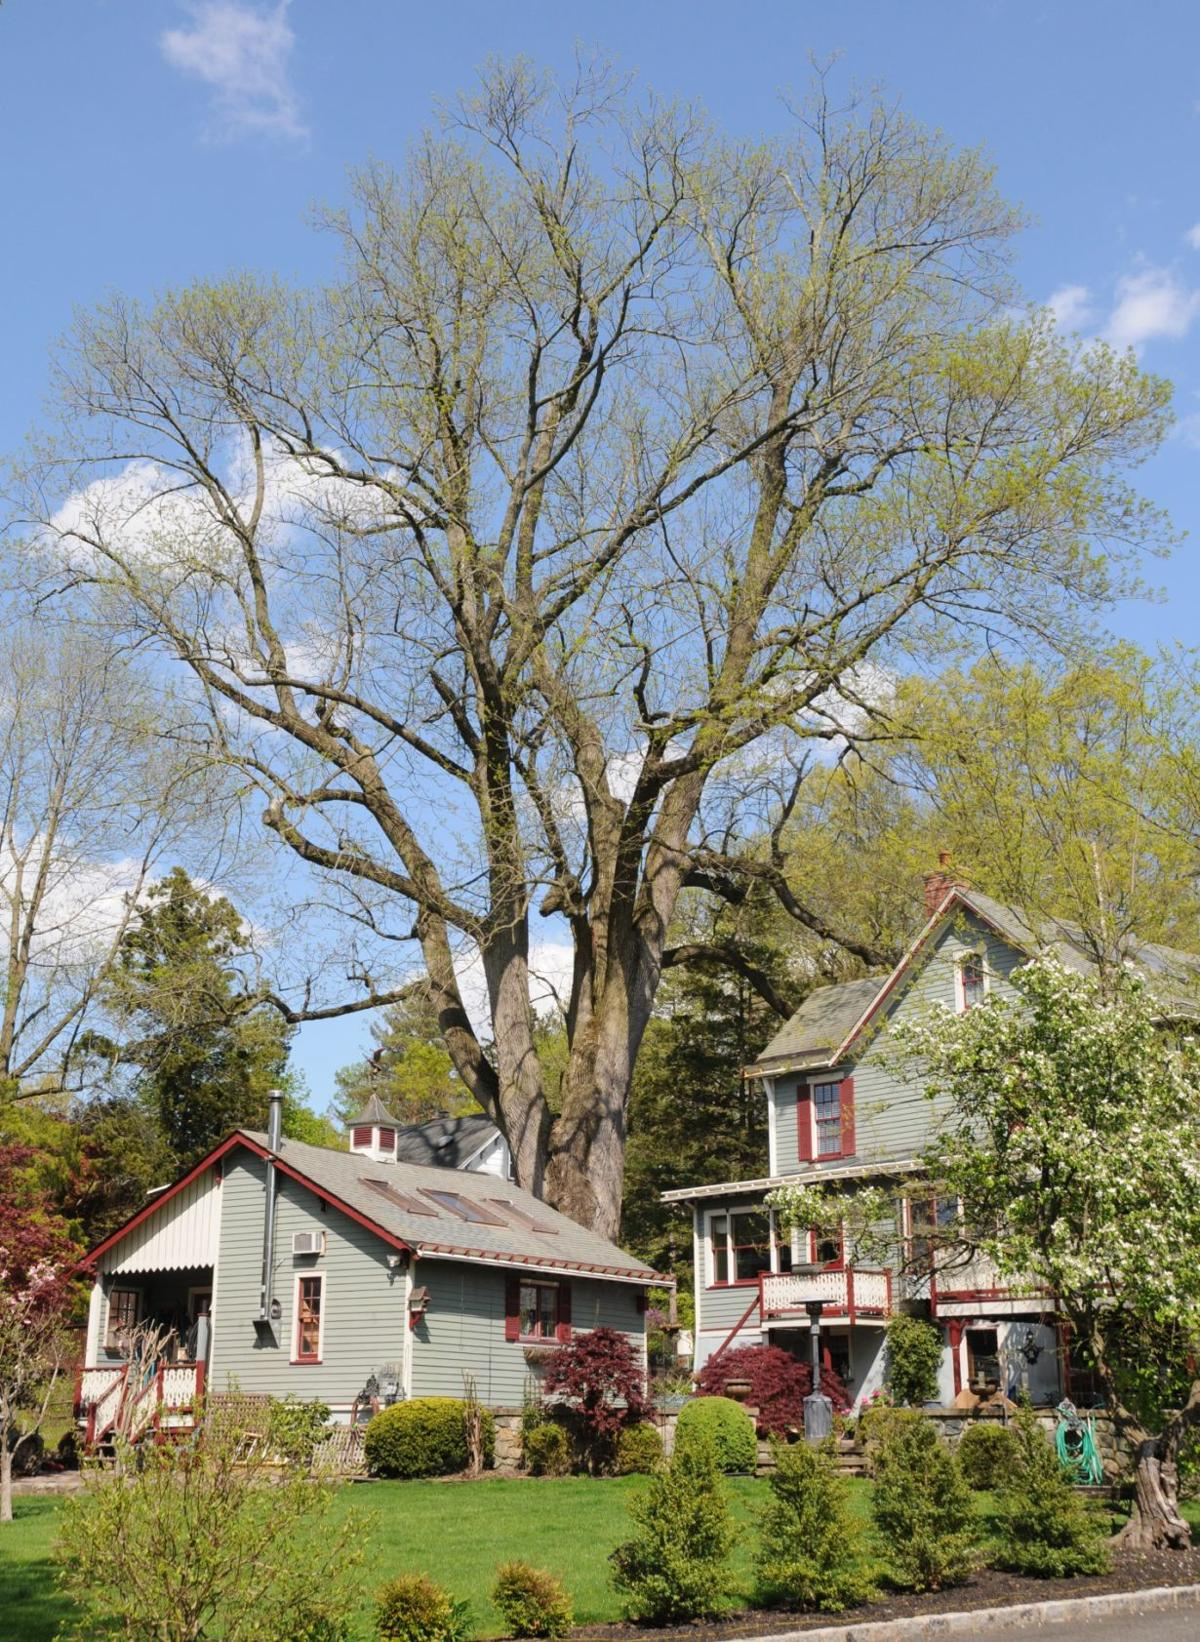 CHAMPION TREE GROWS IN MADISON